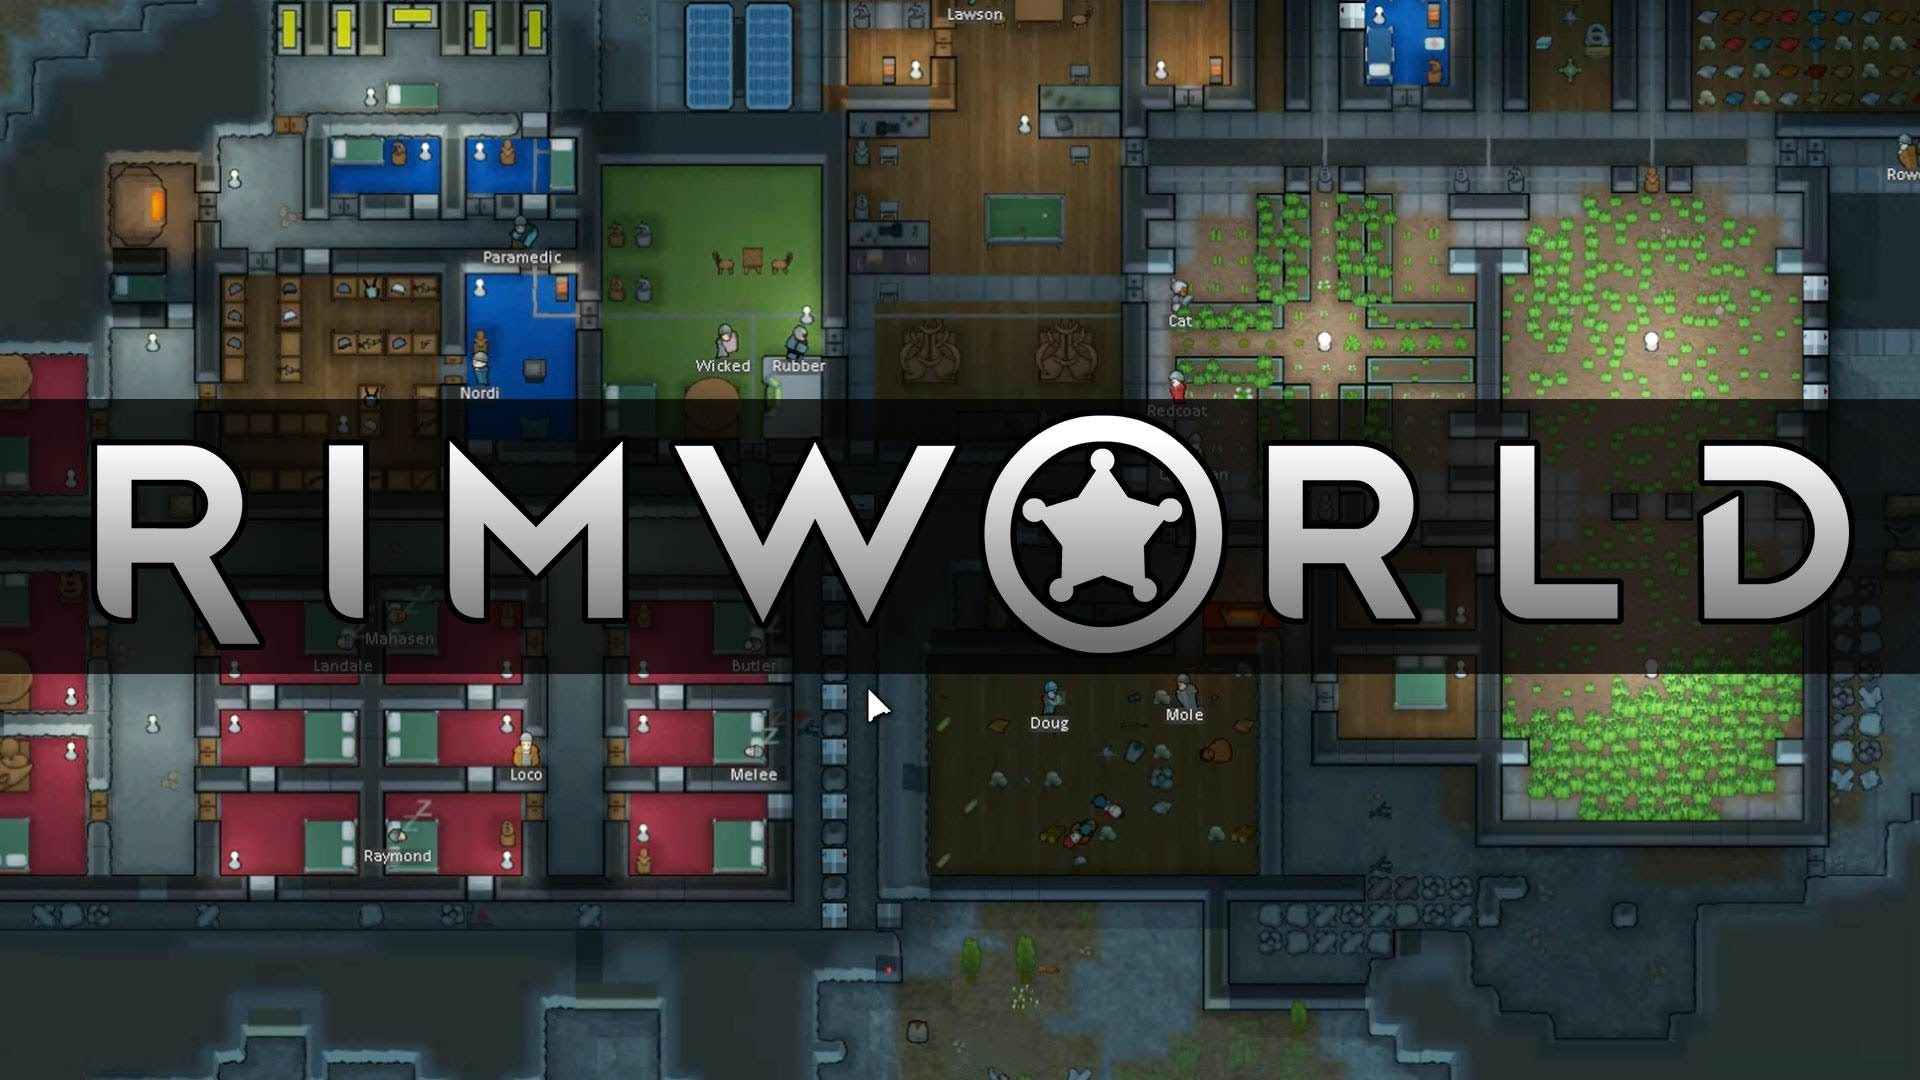 Rimworld alpha 13 mac windows download 3